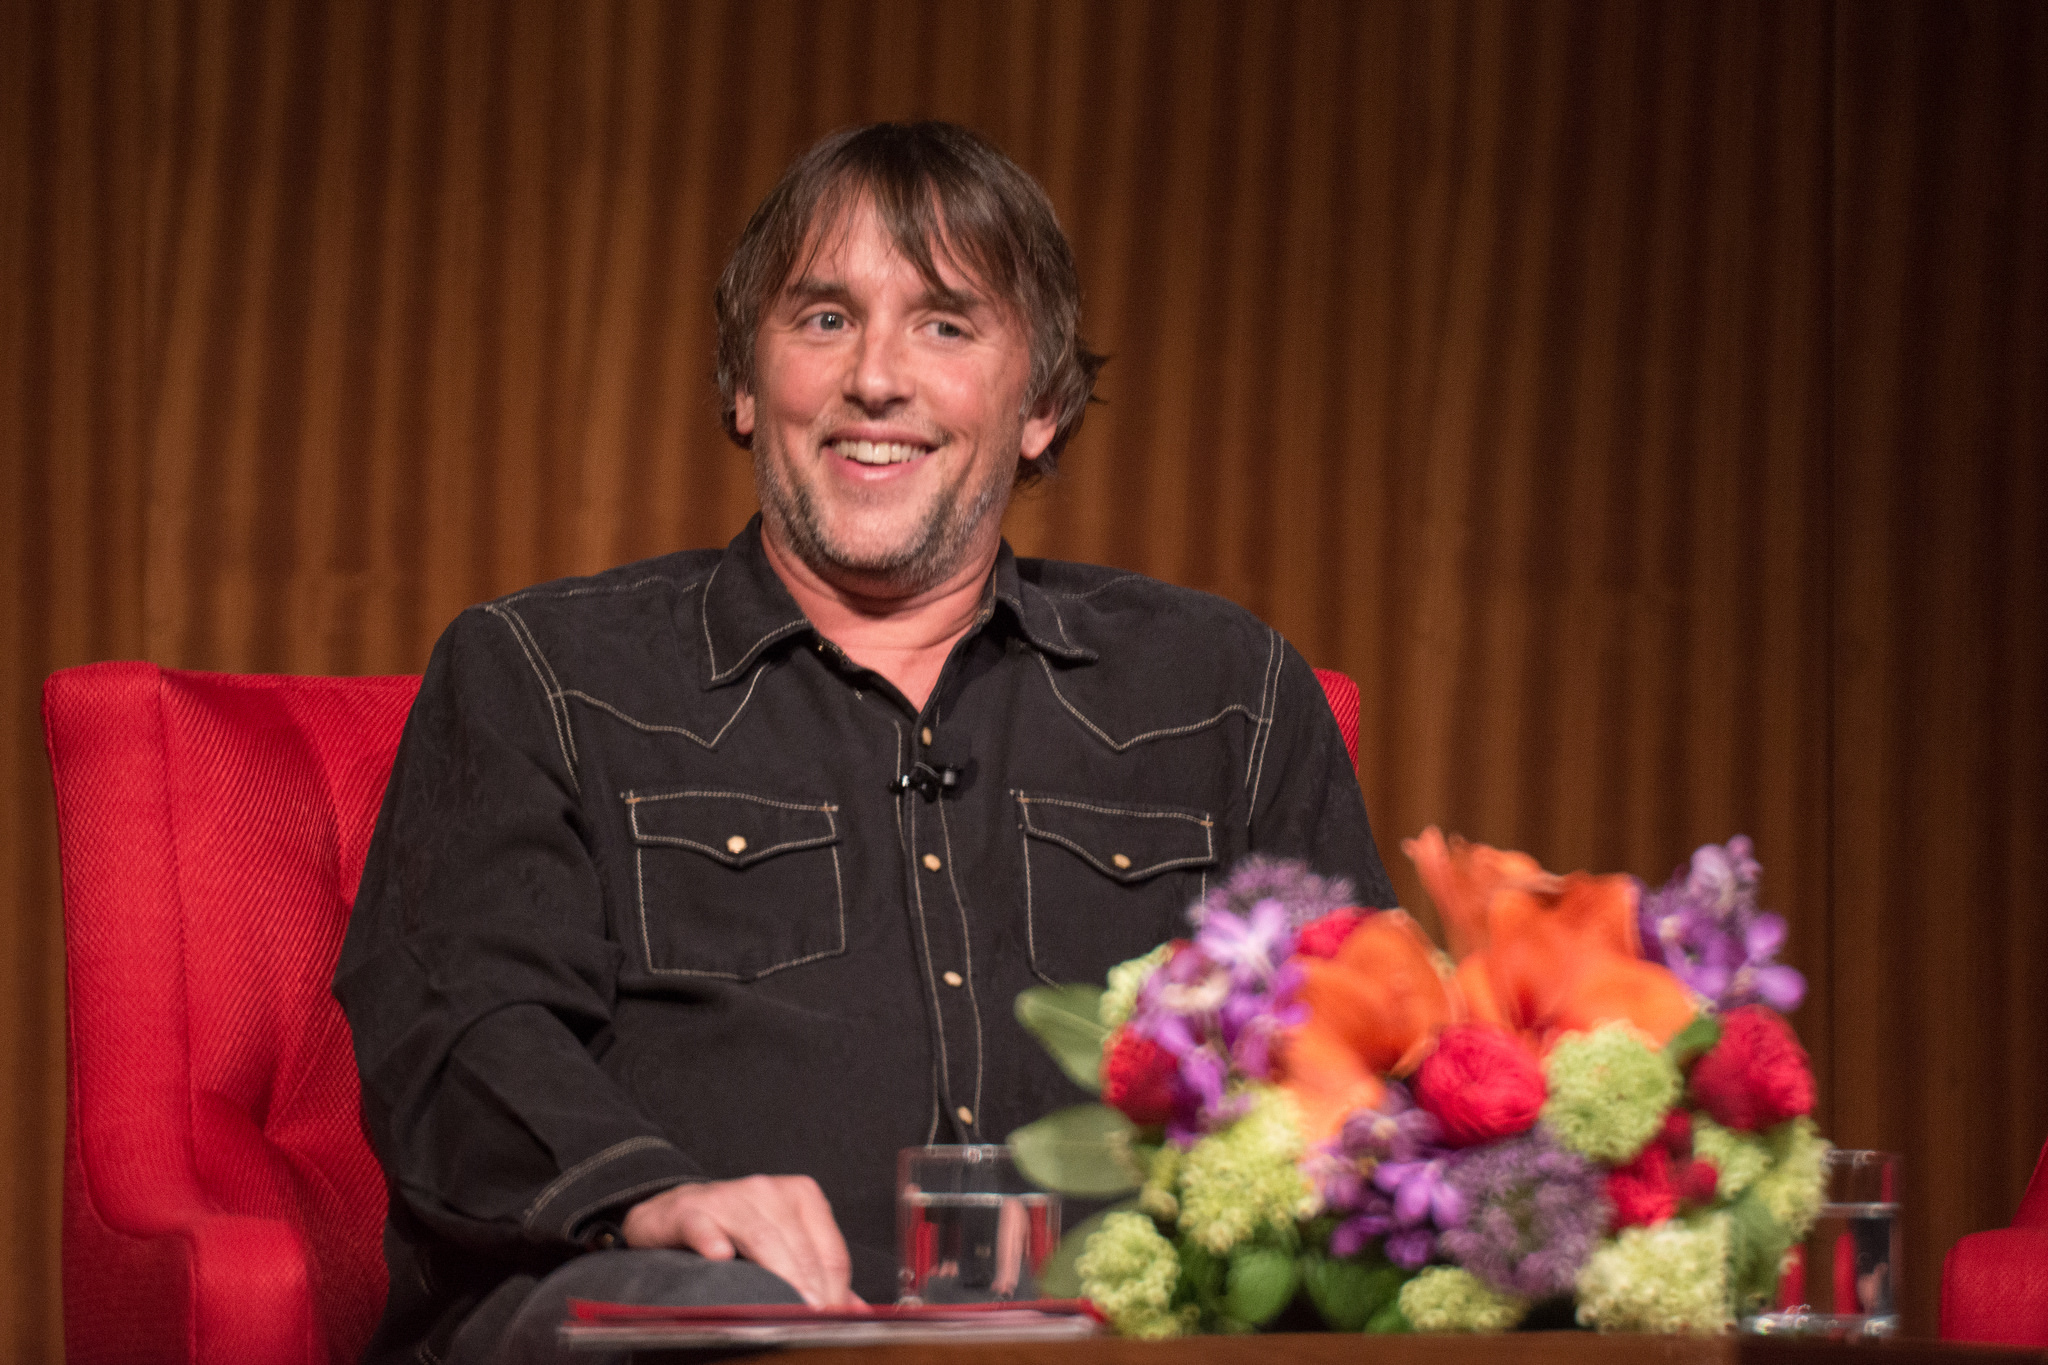 "Director Richard Linklater and actor Ellar Coltrane shared their experiences in the making of the groundbreaking film, ""Boyhood"", with Friends of the LBJ Library members at the LBJ Presidential Library on April 27, 2015. The program was moderated by LBJ Library Director Mark Updegrove and welcomed by Jim Ritts, Executive Director of the Paramount Theatre. Photographer Matt Lankes signed copies of his book, ""Boyhood: Twelve Years on Film,"" before the program with Linklater and producer Cathleen Sutherland. Photo by Lauren Gerson."